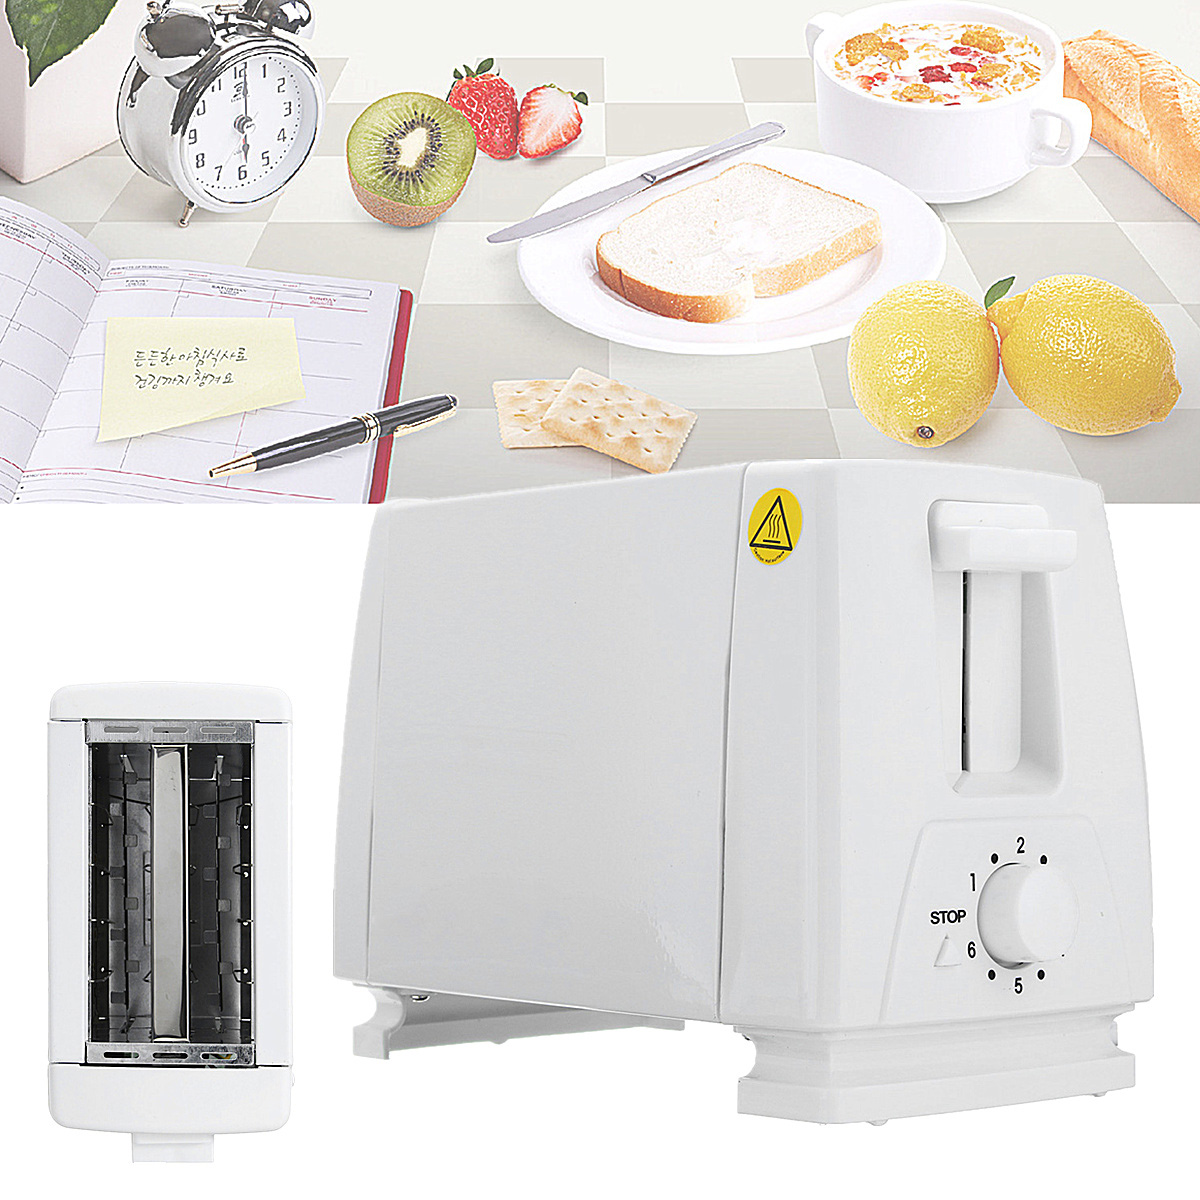 750W Stainless Steel 2 Slice Toaster Mini Automatic Electronic Bread Toaster Household Breakfast Baking Bread Machine